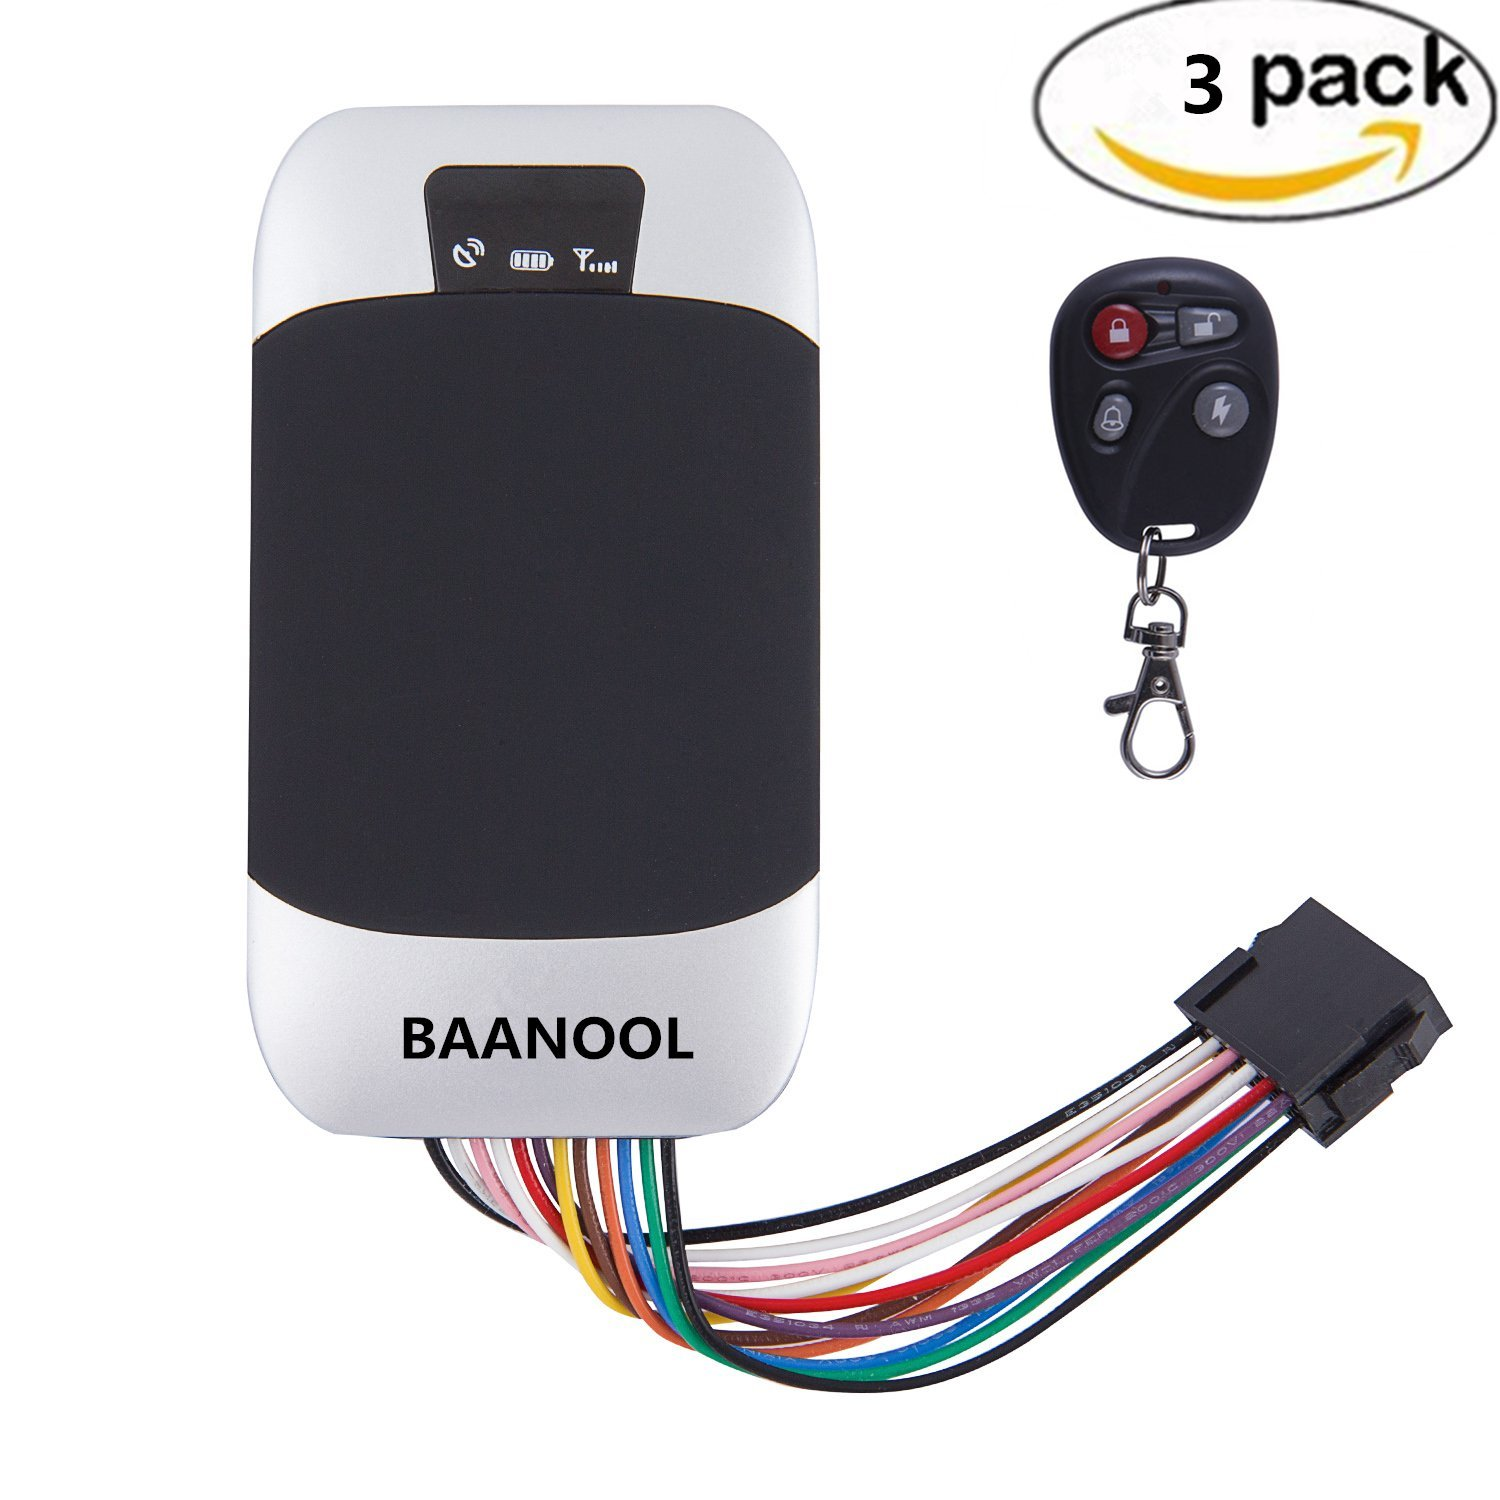 BAANOOL 3PCS Waterproof Real Time GPS Tracker Remote Control GPS Tracking Device Vehicle Tracker Car Tracker Devices 303G